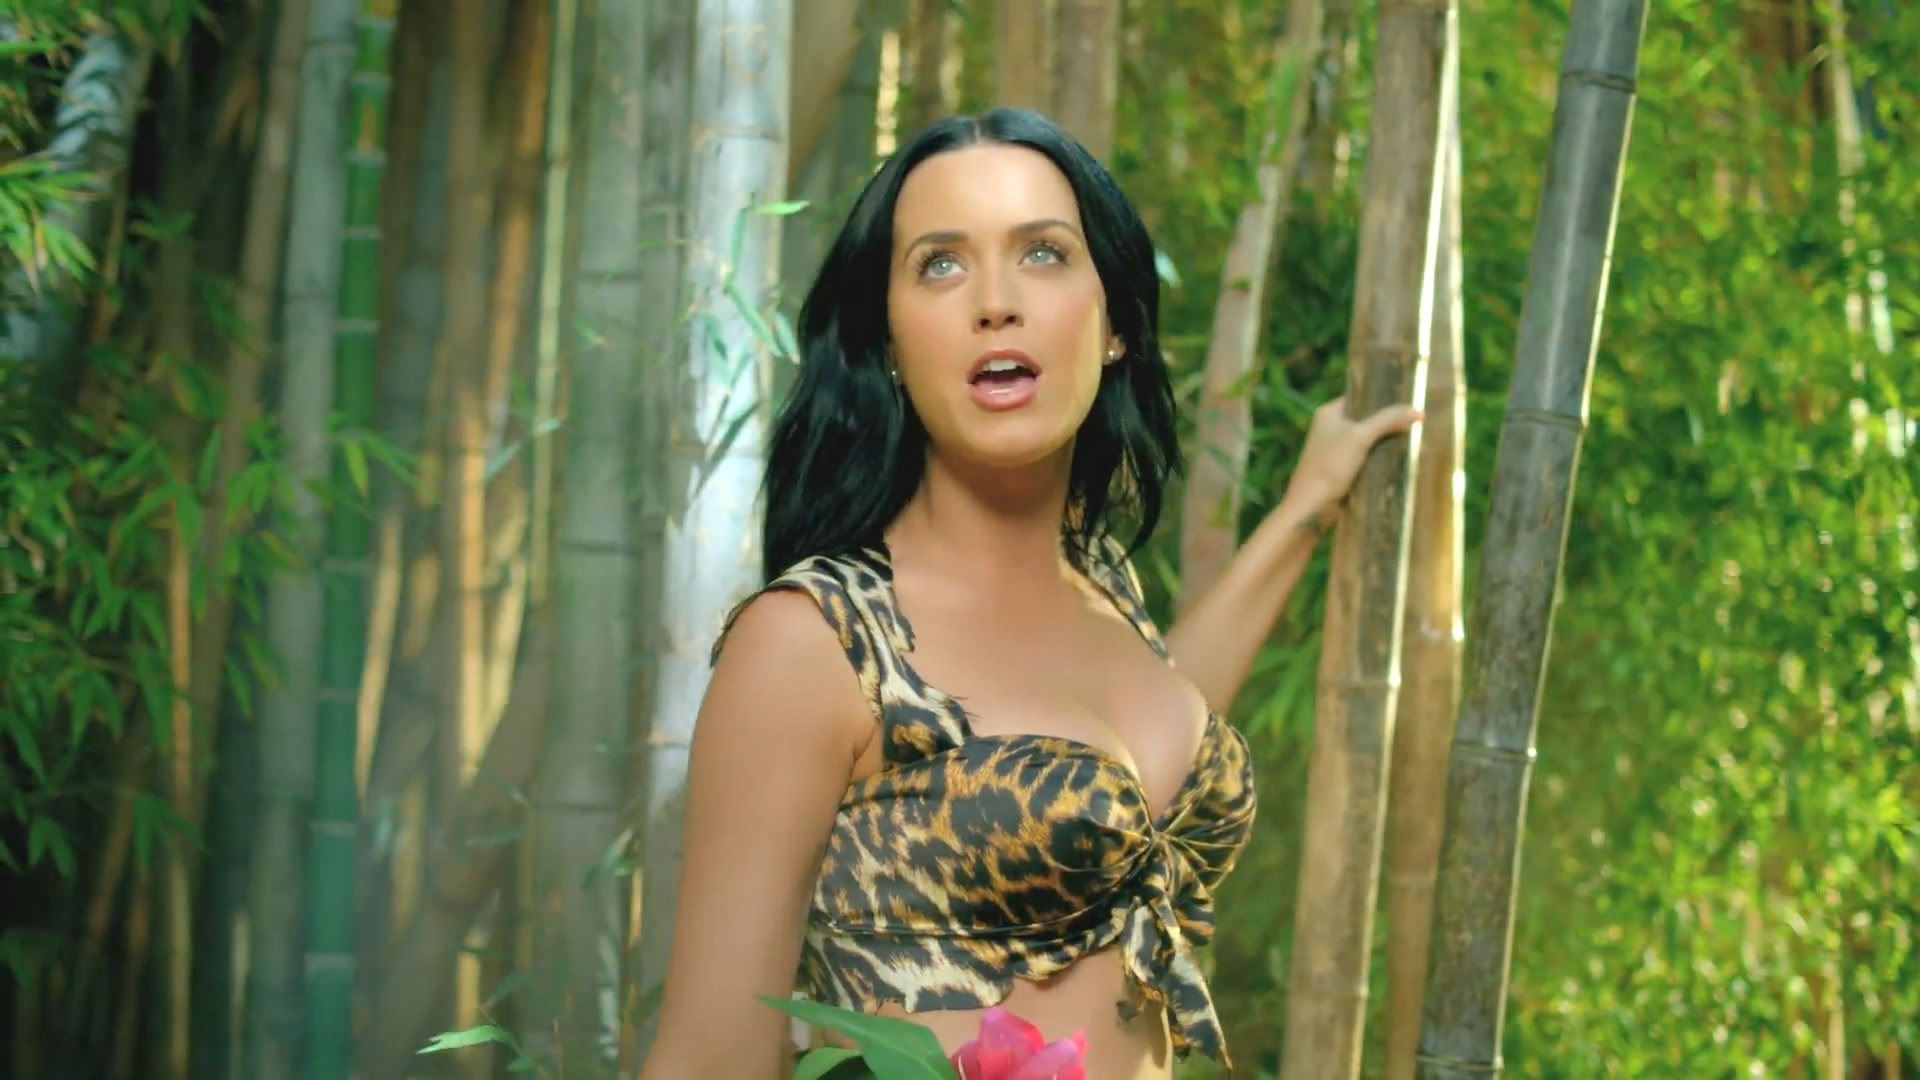 image - katy-perry-roar-music-video-hd--04 | dragon ball wiki